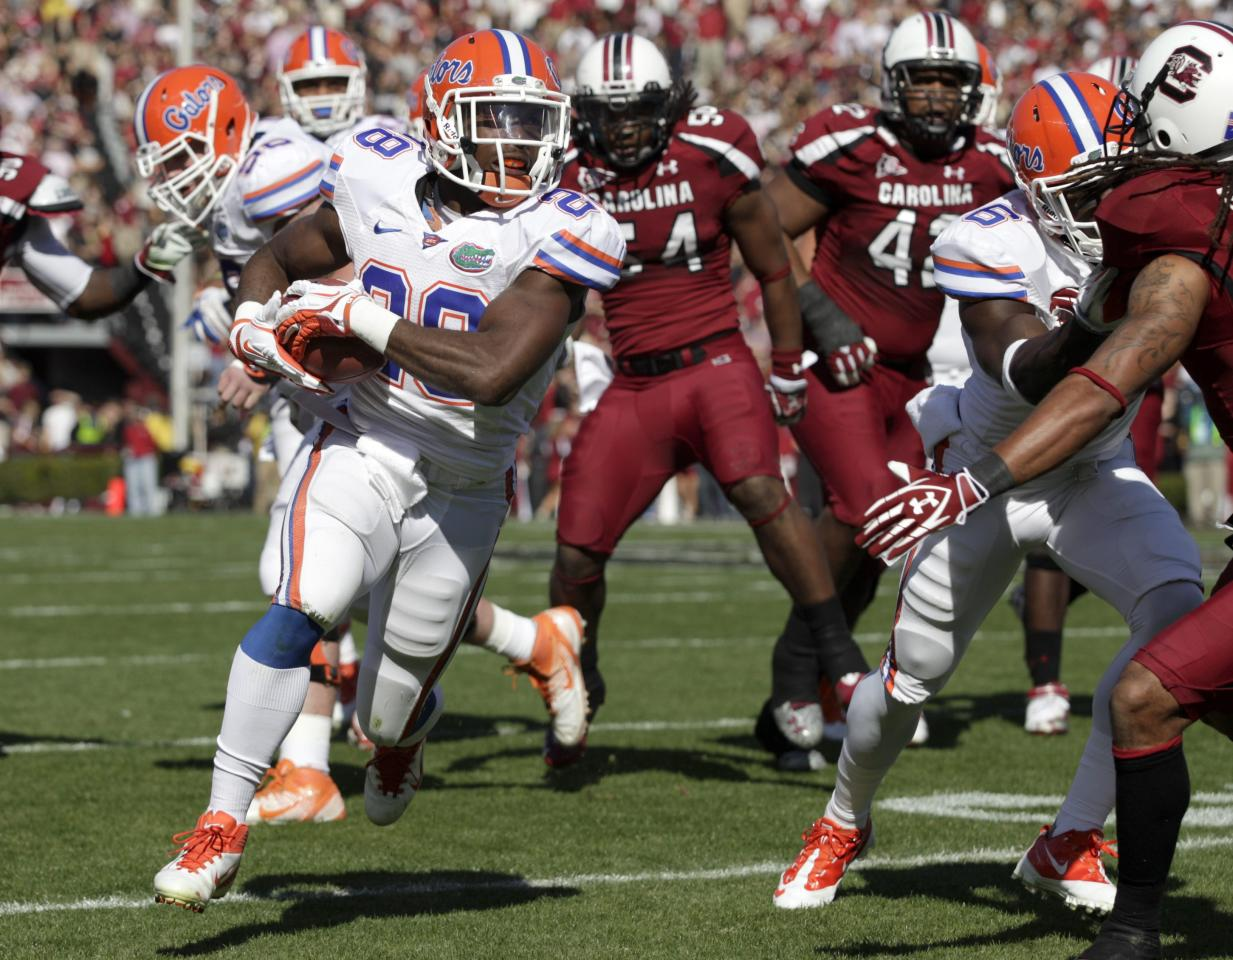 Florida running back Jeff Demps, left, finds a hole in the South Carolina defense as he picks up a first down during the second quarter of an NCAA college football game at Williams-Brice Stadium, in Columbia, S.C., Saturday, Nov. 12, 2011.  (AP Photo/Brett Flashnick)